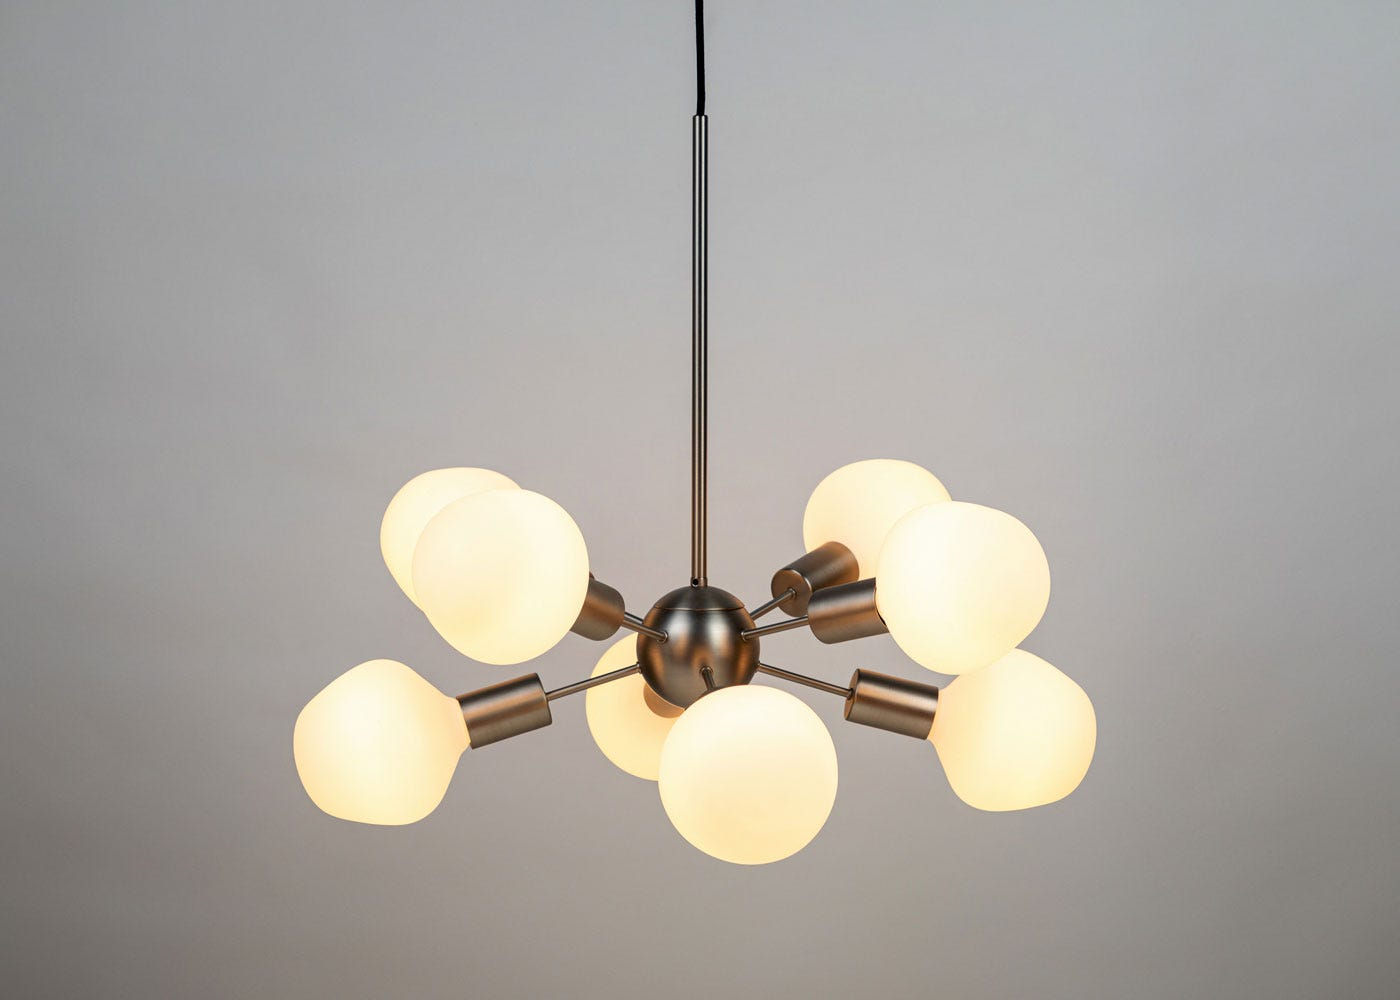 As shown: Satin nickel junction with Tala Enno bulbs